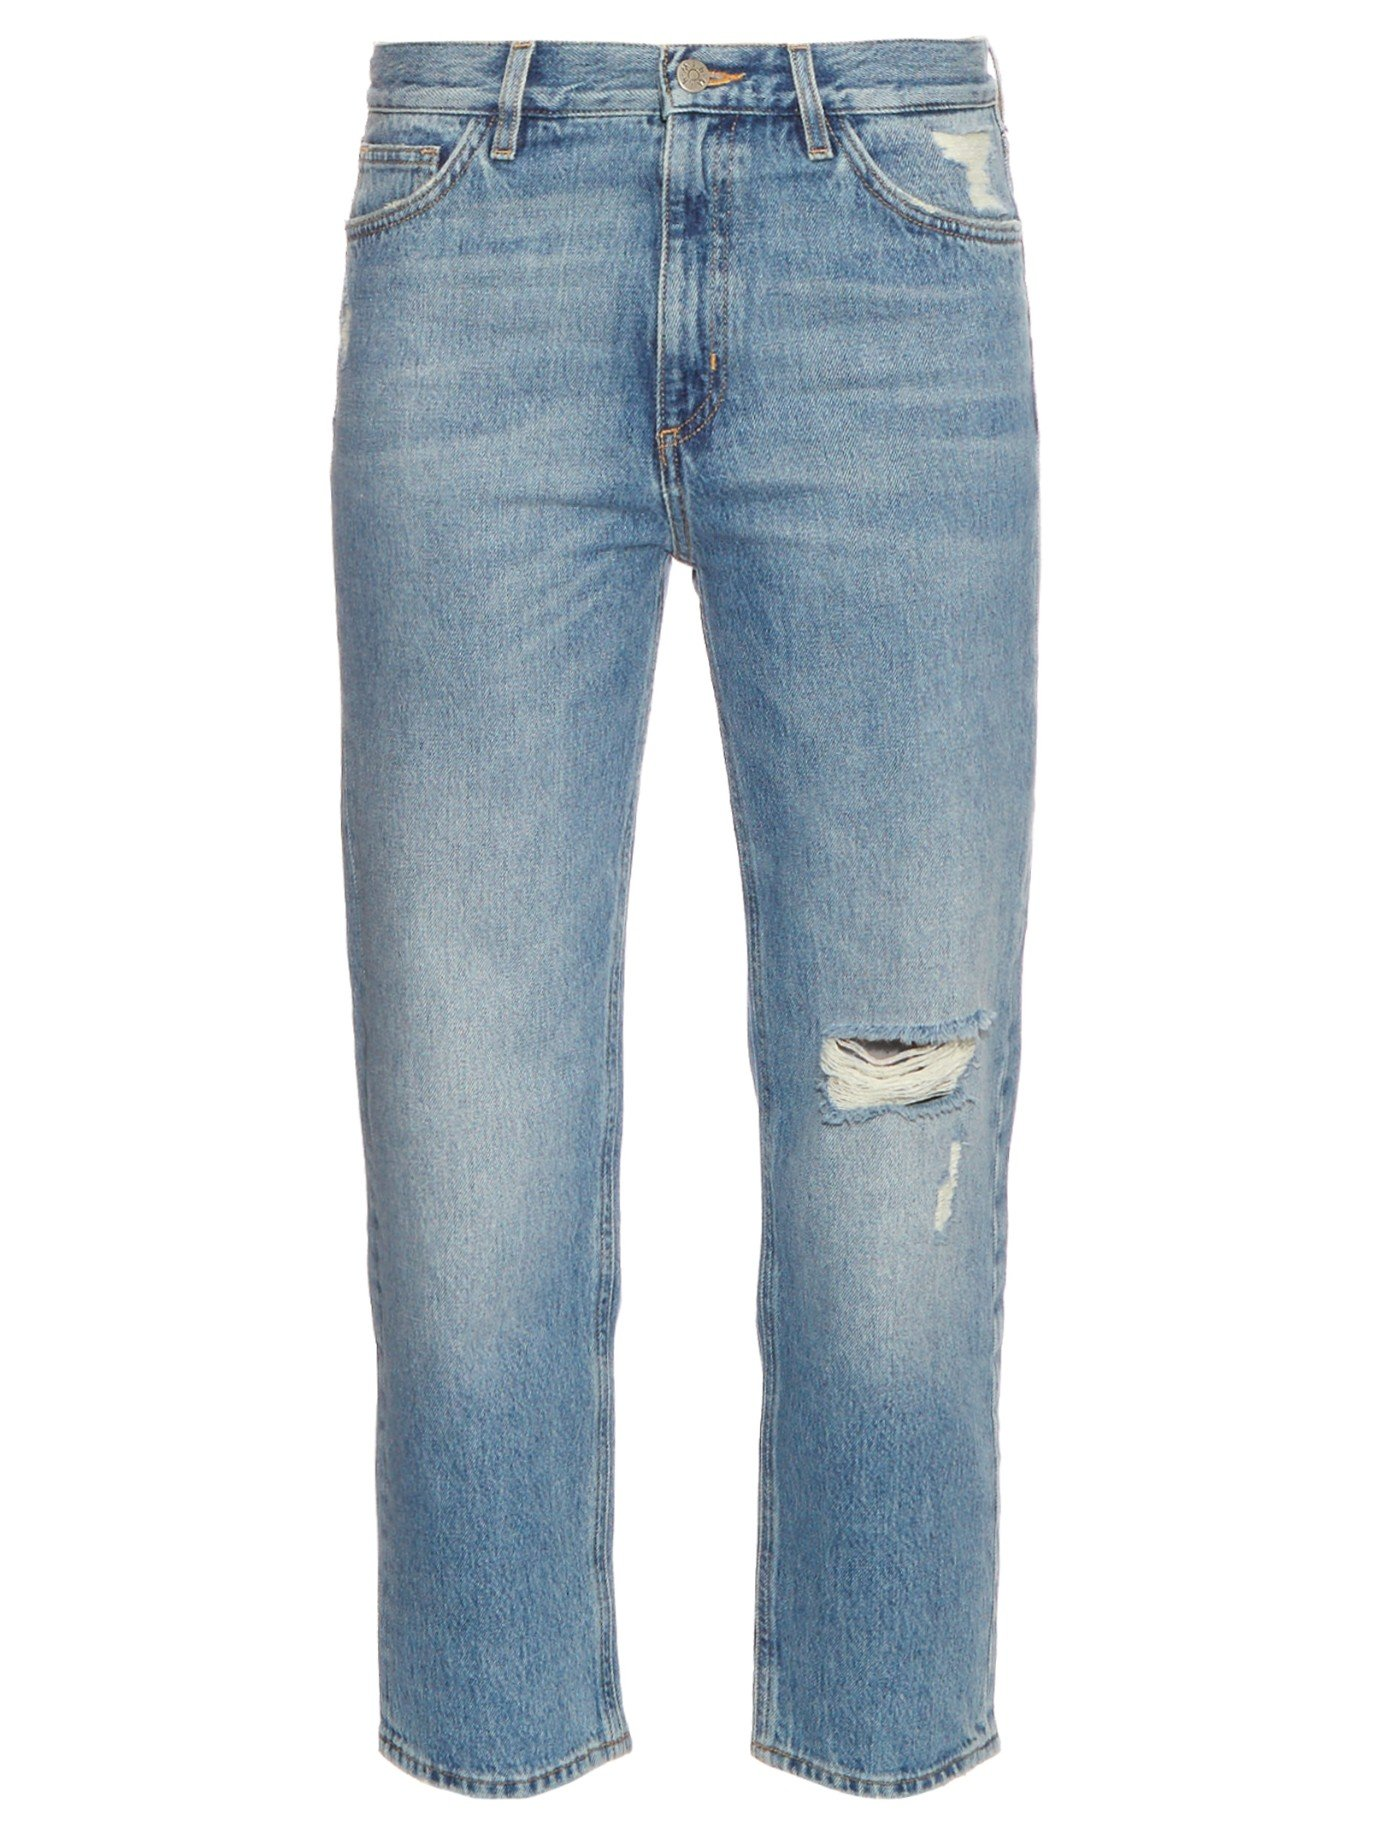 Jeanne High-rise Cropped Distressed Straight-leg Jeans - Blue Mih Jeans 2fR0ENMOi